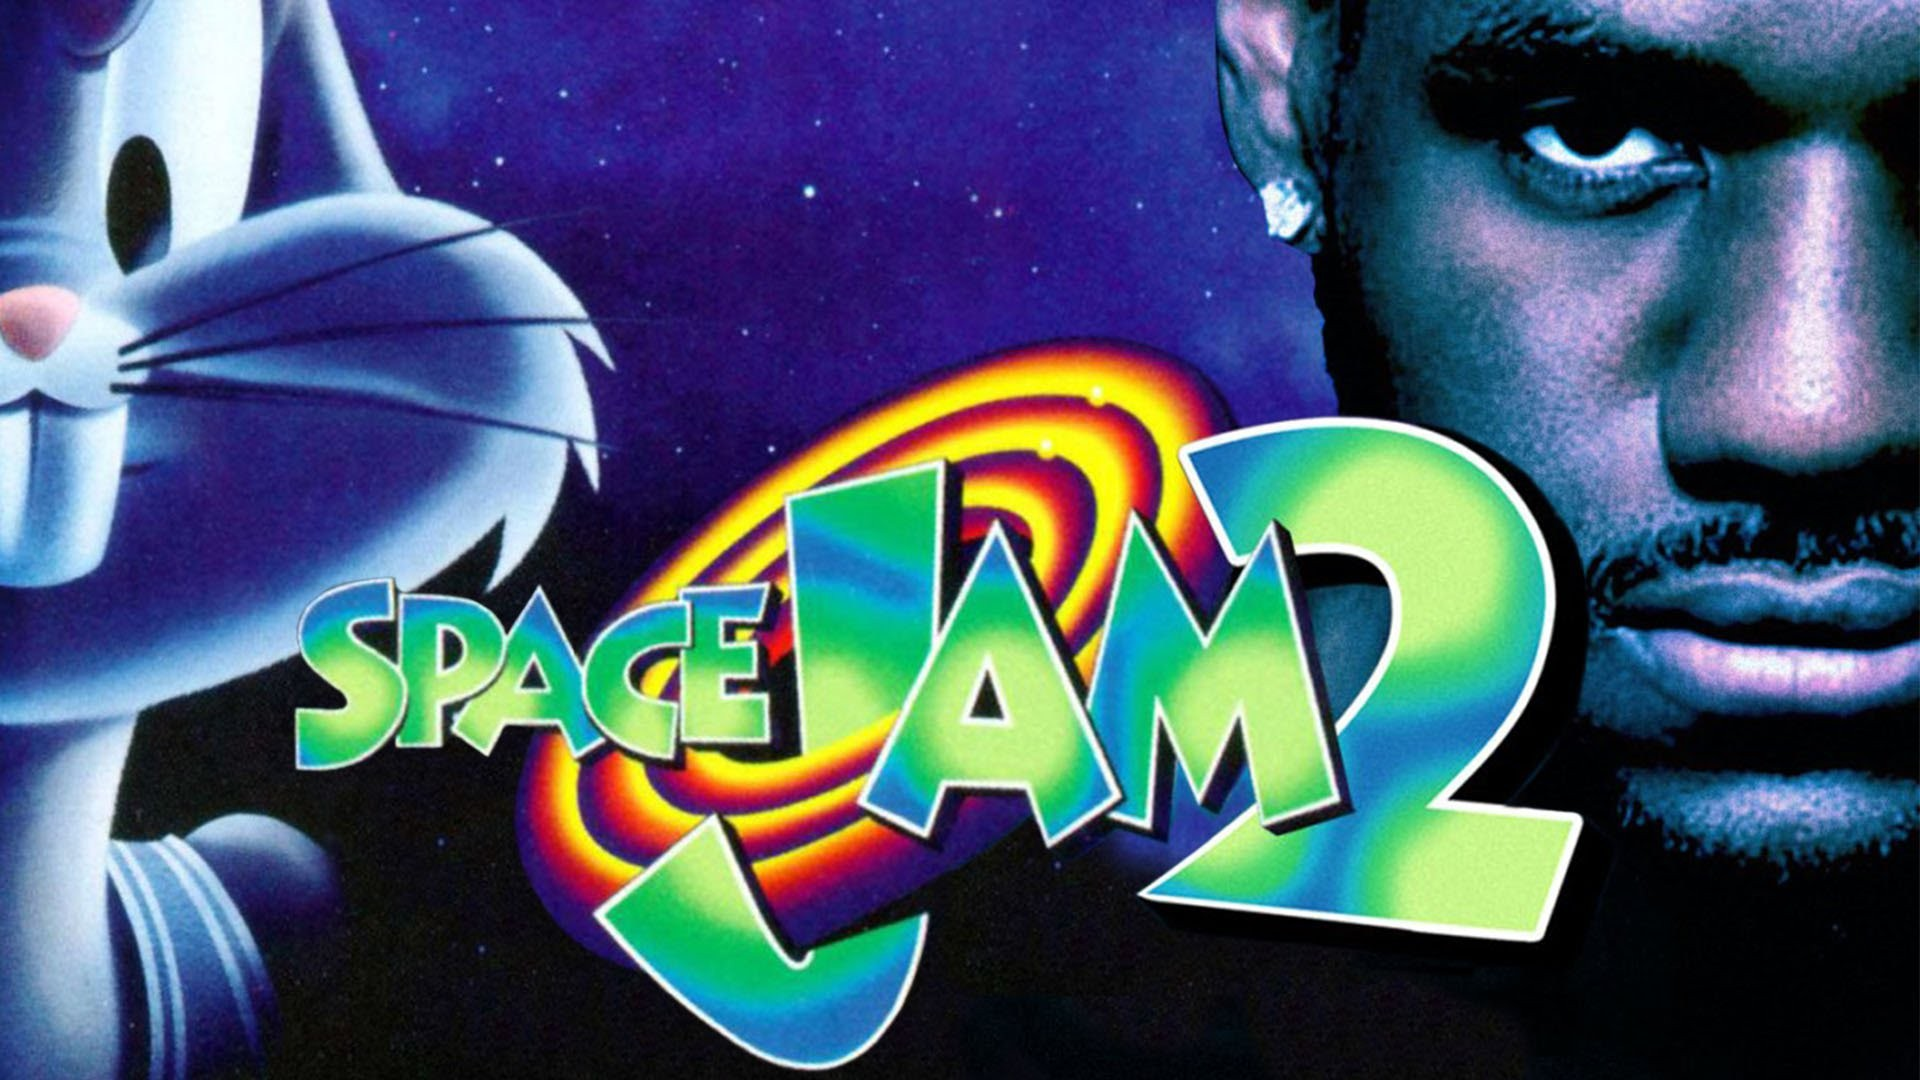 Space Jam 2 | Collater.al